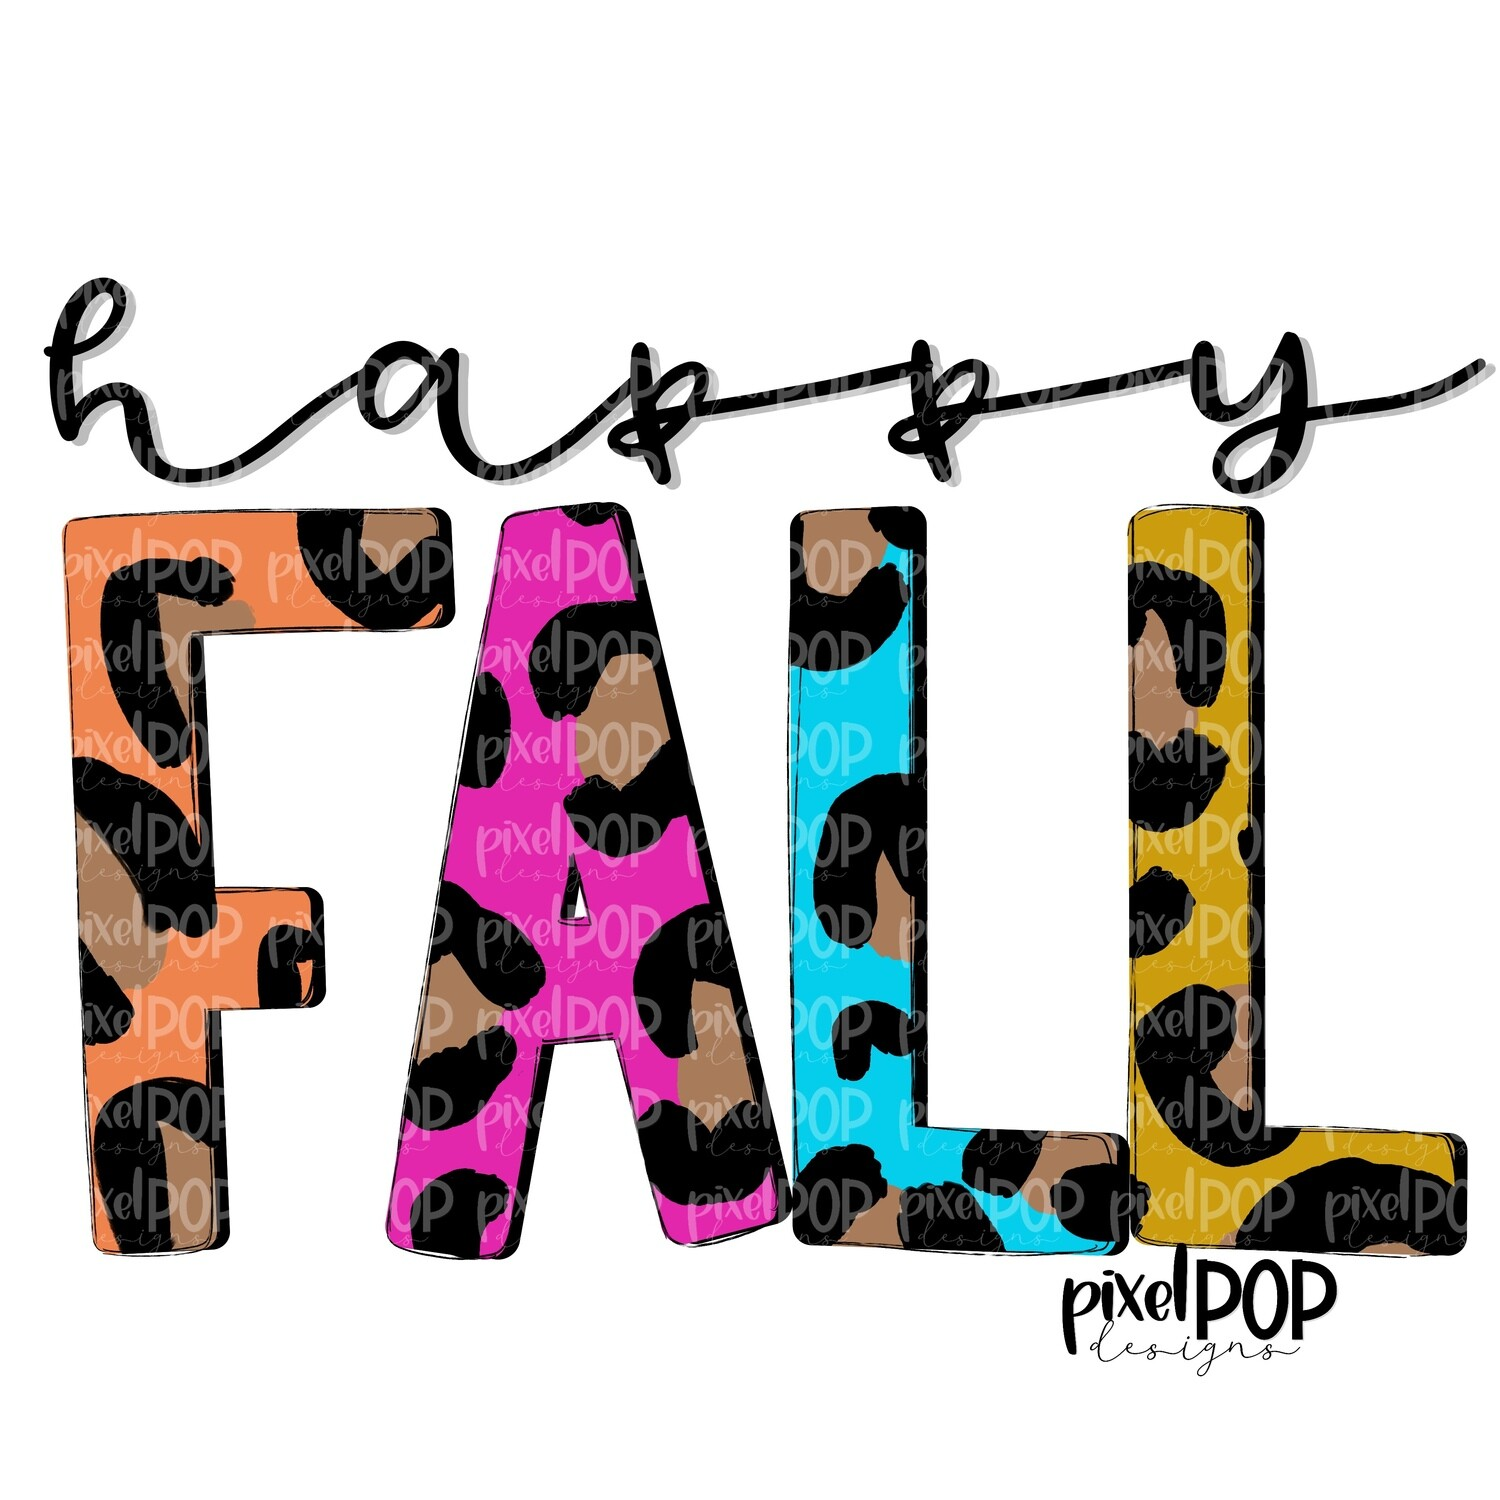 Happy Fall Jewel Tones Leopard PNG   Sublimation Design   Hand Painted Design   Fall Art   Fall Design   Fall Art   Happy Fall   Printable